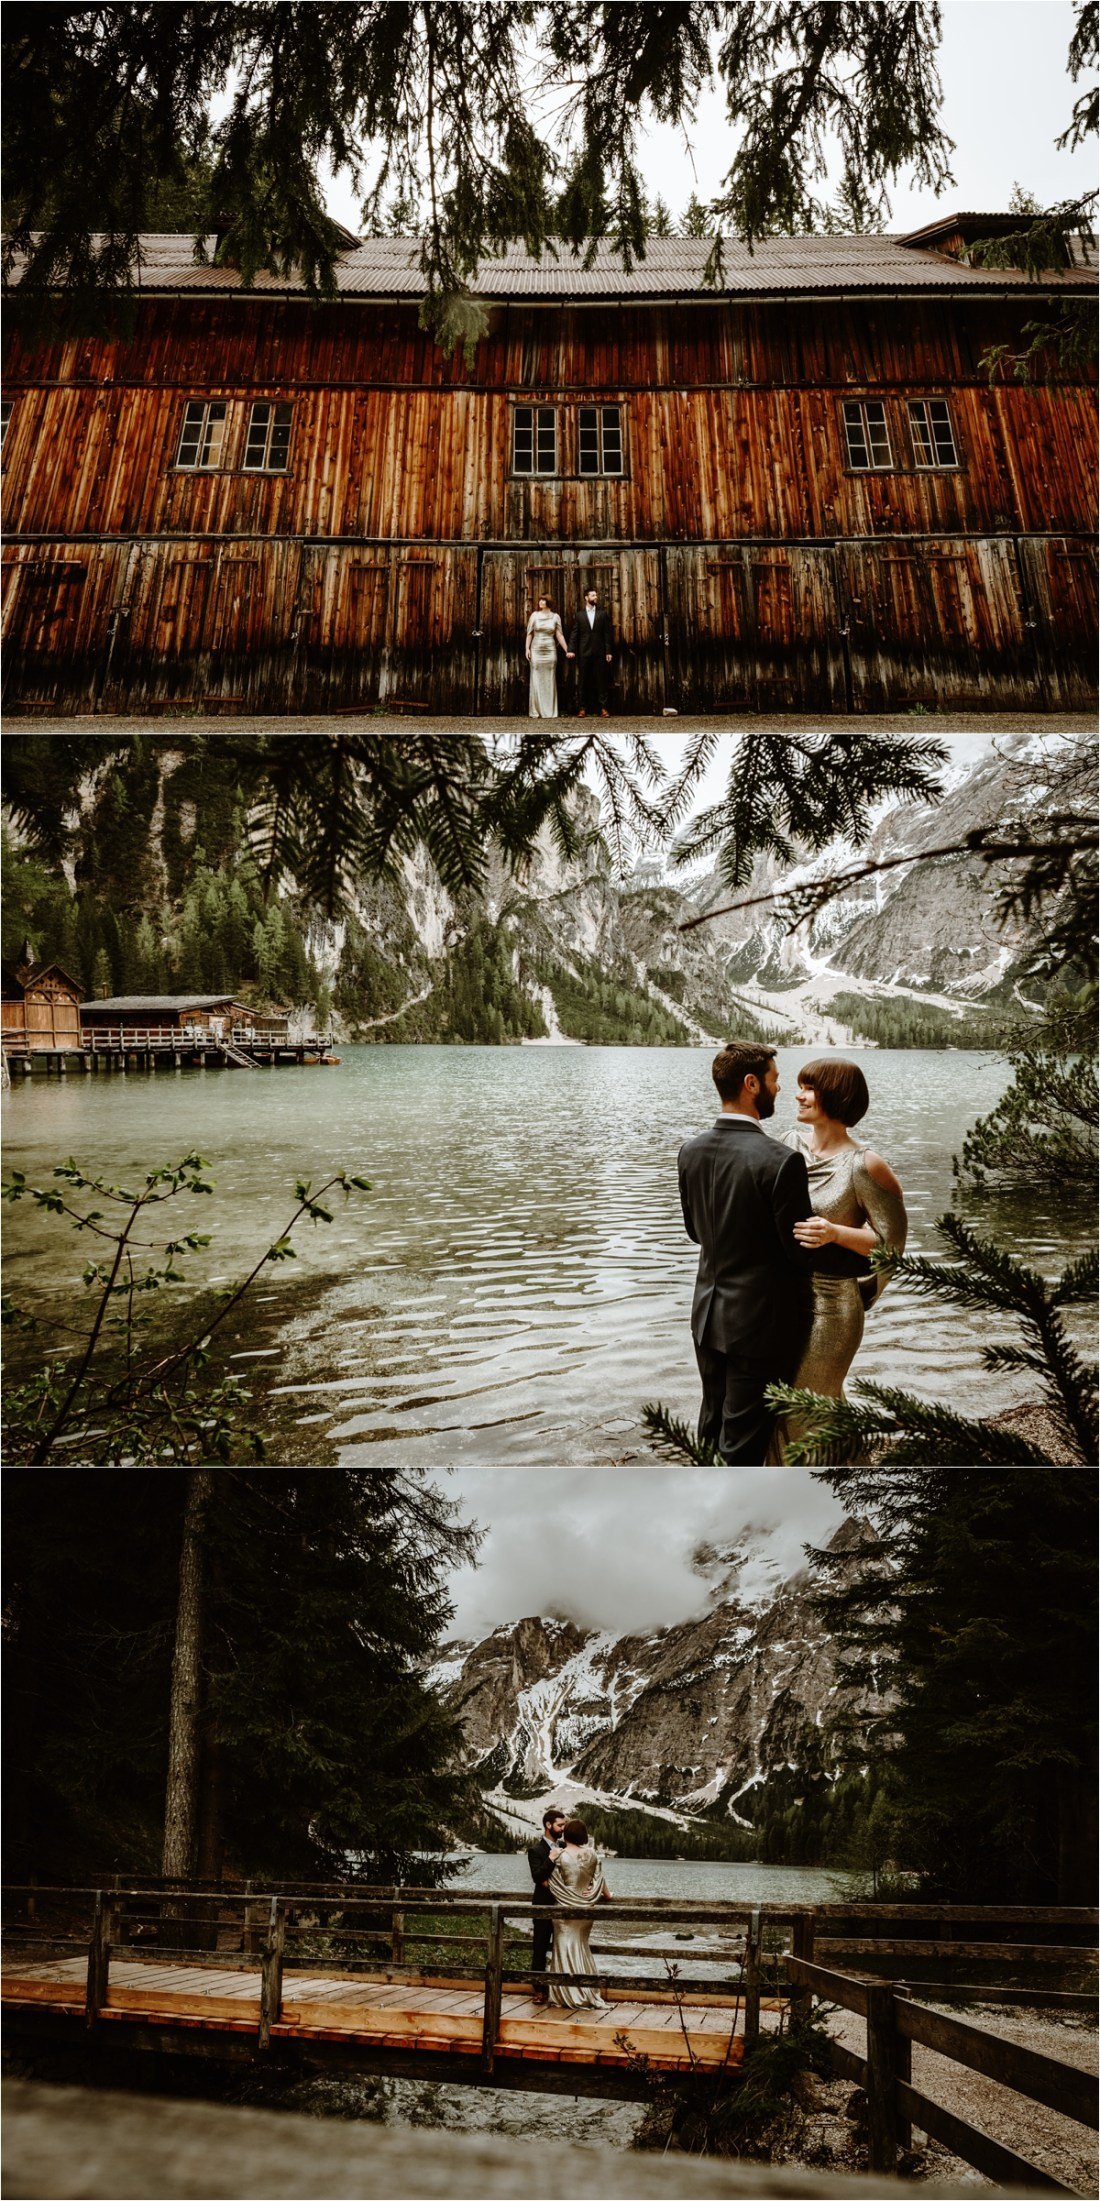 Laurel & Dustin shelter from the rain under the trees and barn roof at Lake Braies in the Italian Alps. Photo by Wild Connections Photography